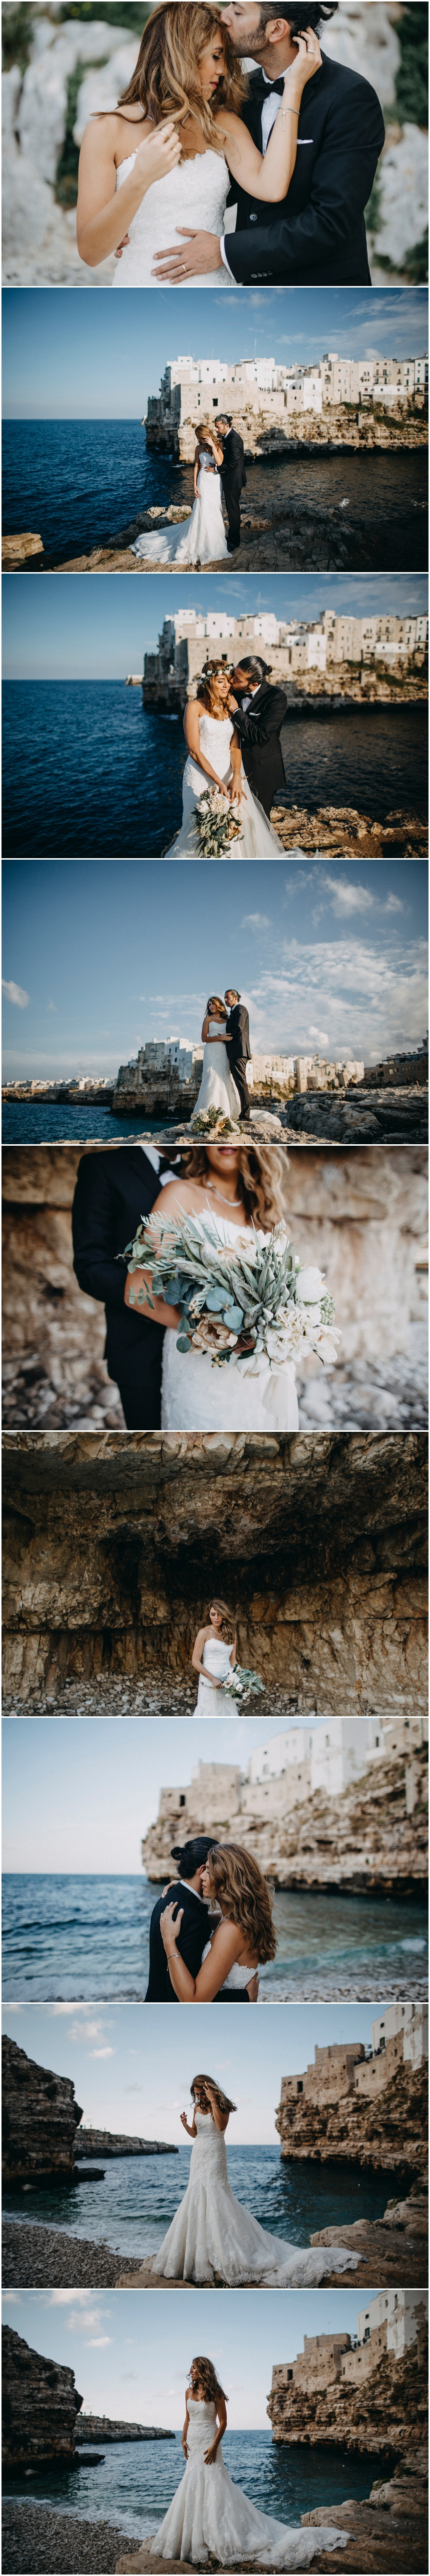 Wedding photographer in Italy Polignano Ostuni